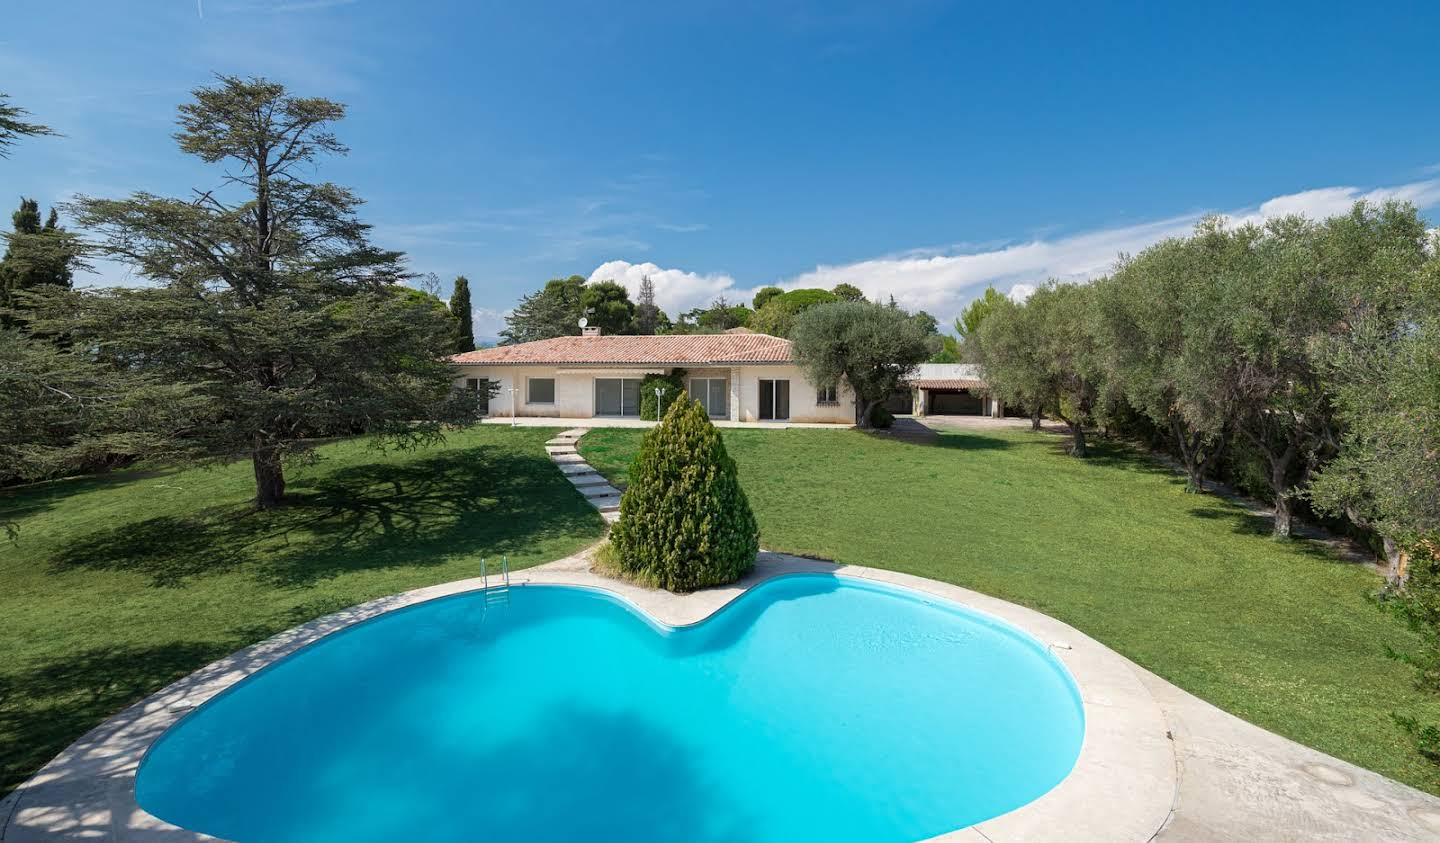 Villa with pool and garden Nice